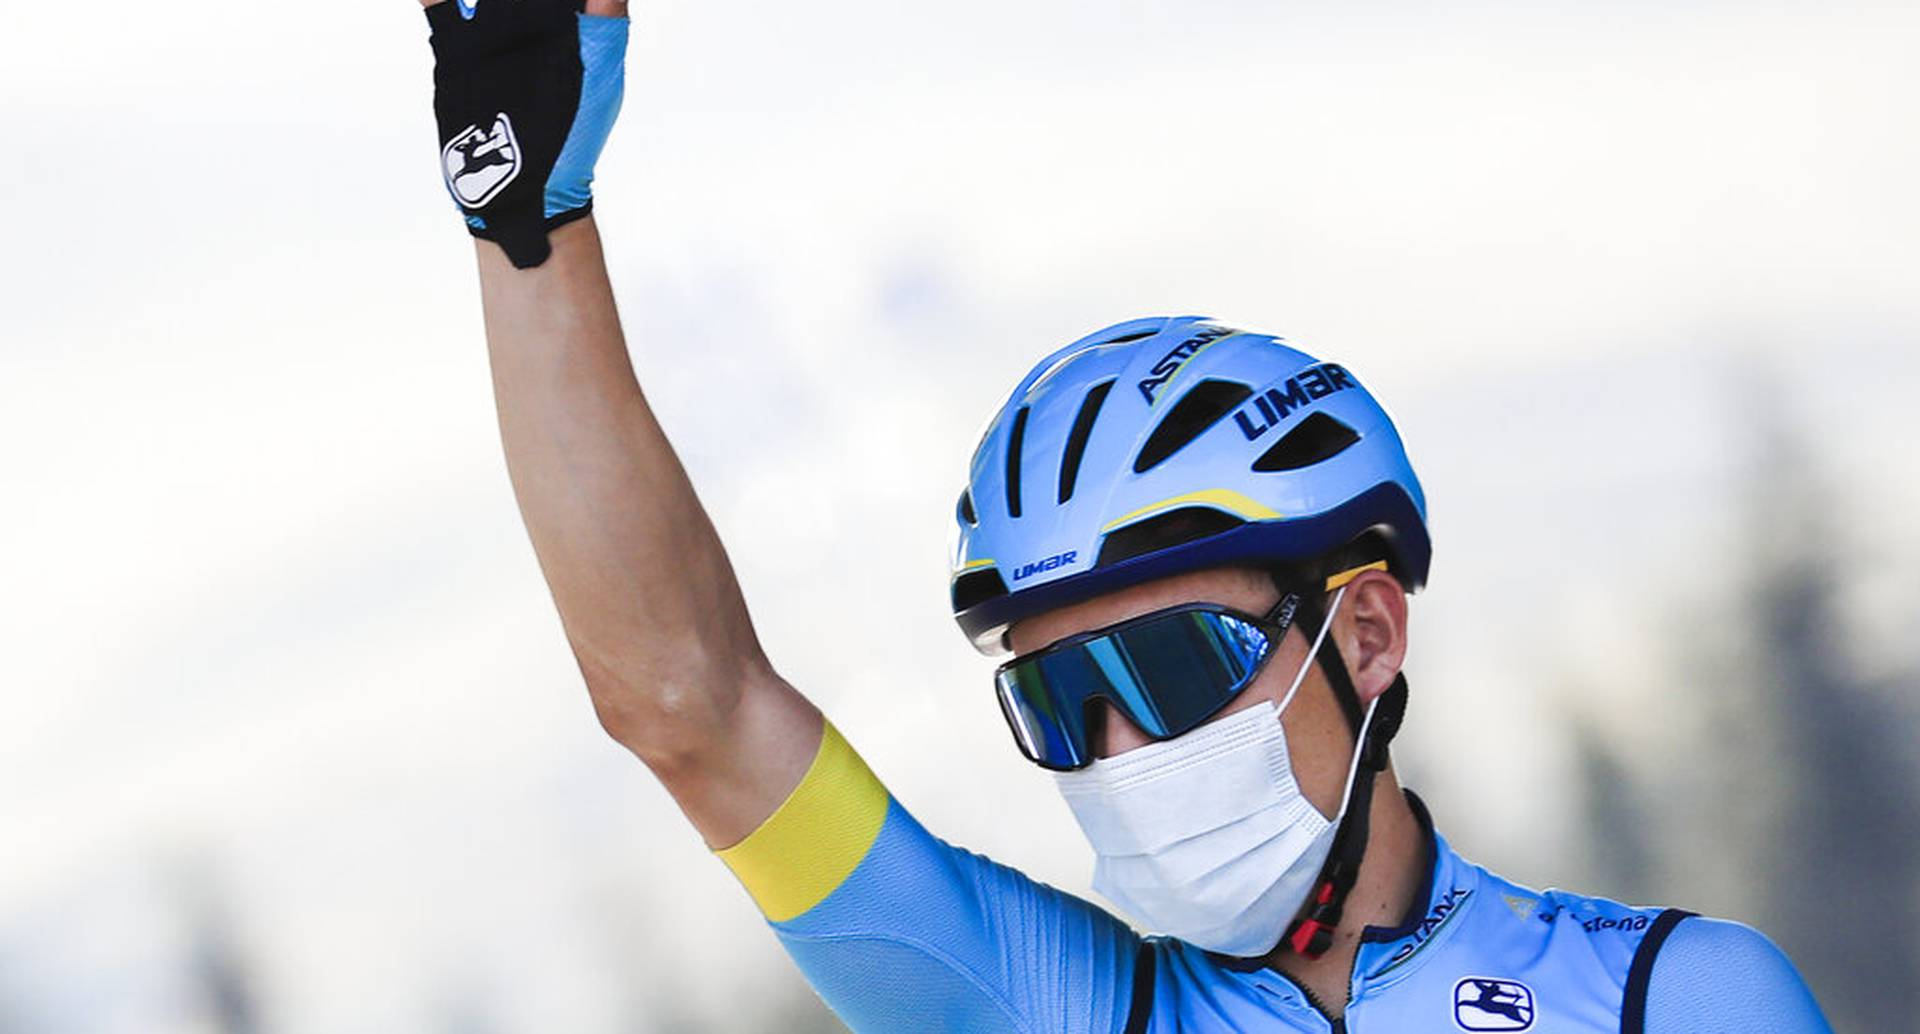 Colombia's Miguel Angel Lopez greets fans prior to the start of stage 18 of the Tour de France cycling race over 175 kilometers (108.7 miles) from Meribel to La Roche-sur-Foron, France, Thursday, Sept. 17, 2020. (Christophe Petit-Tesson/Pool via AP)